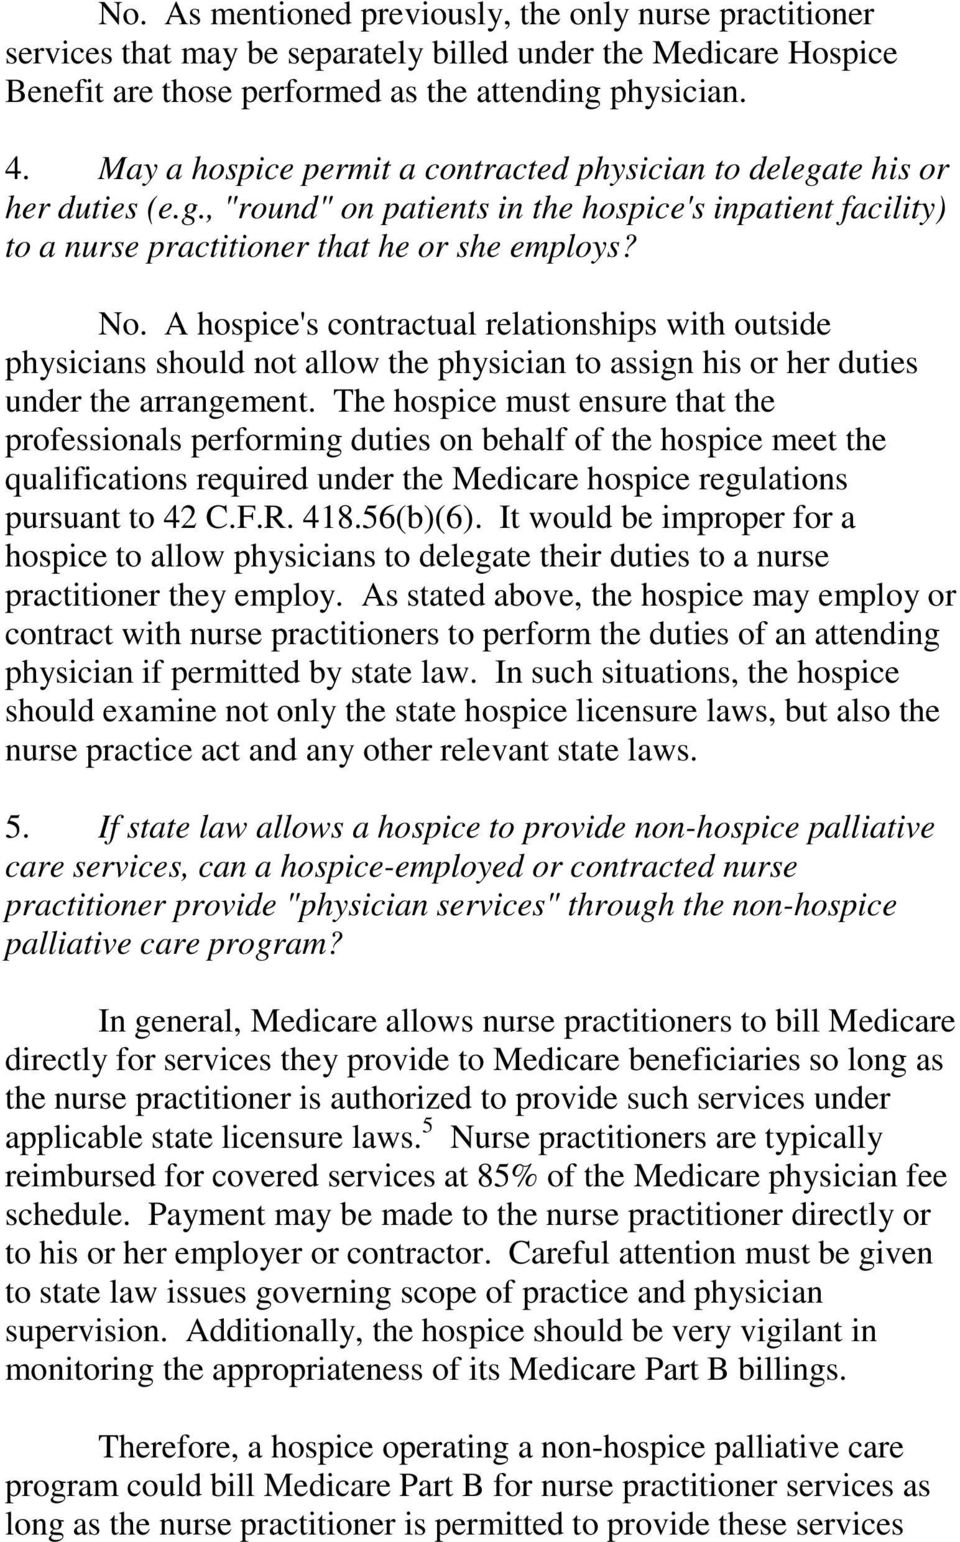 A hospice's contractual relationships with outside physicians should not allow the physician to assign his or her duties under the arrangement.